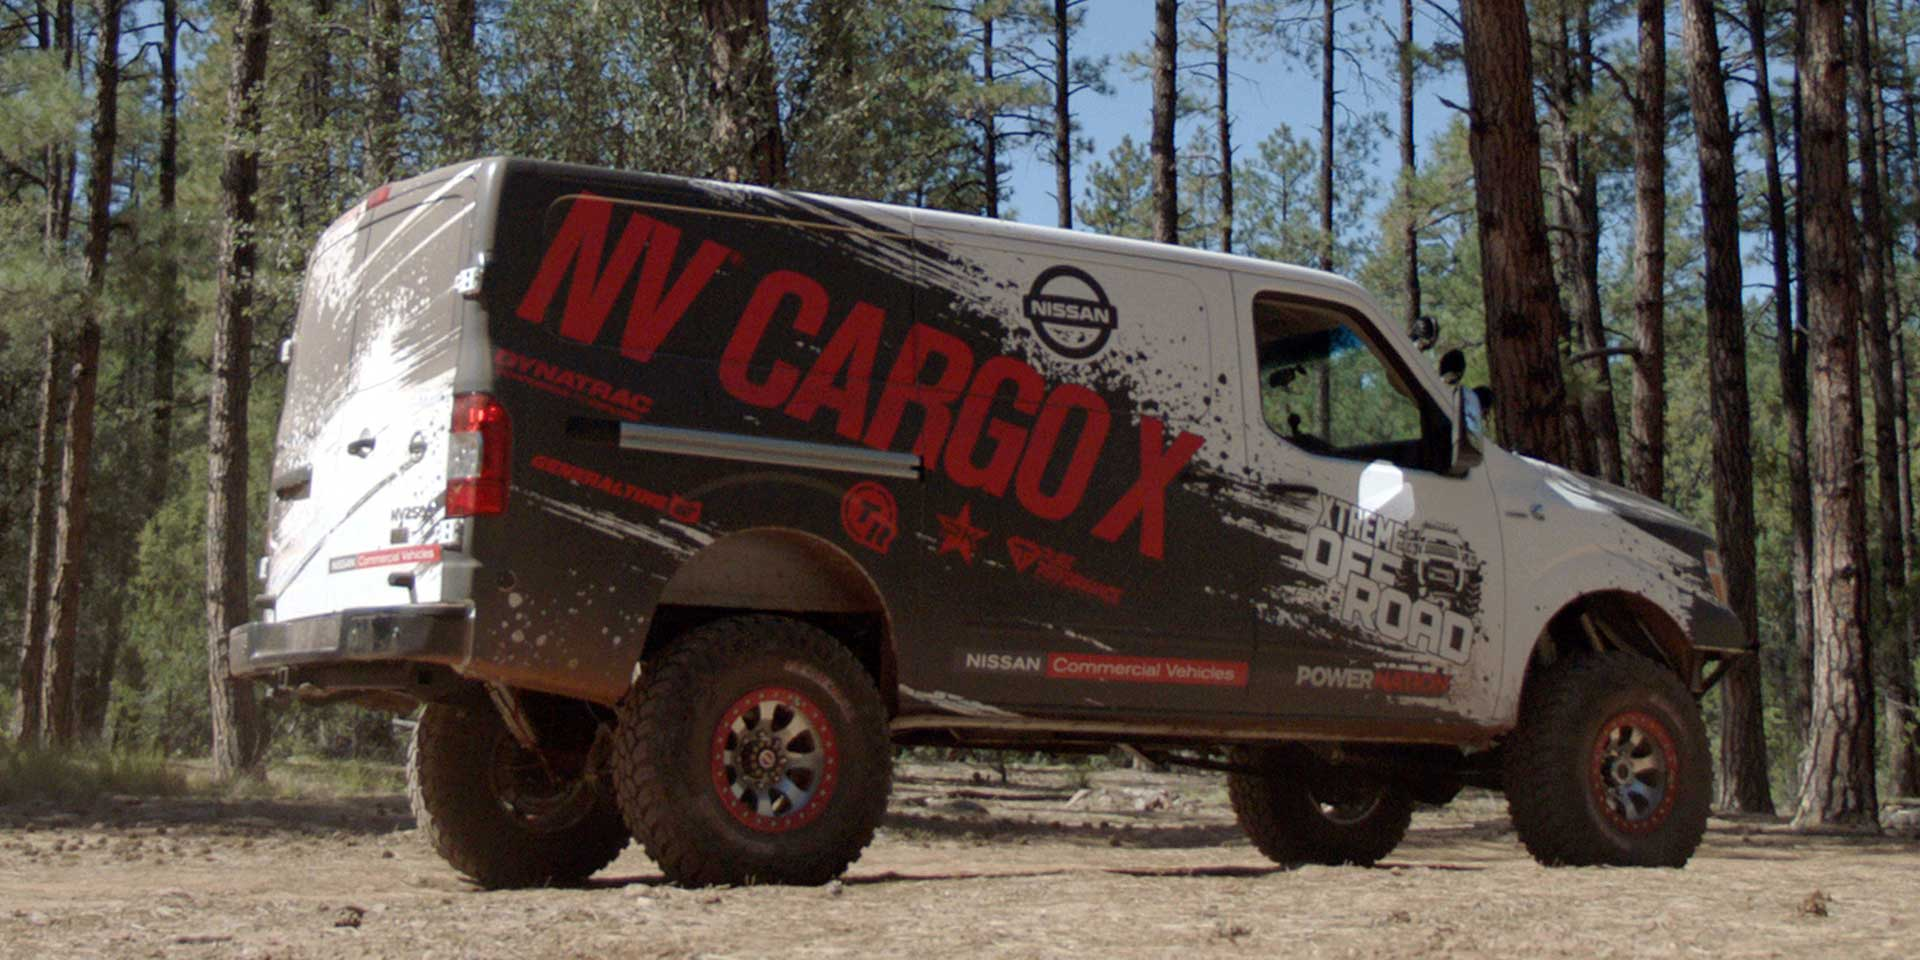 Nissan NV Cargo X The Is A Big Bad Van That Takes To New Heights